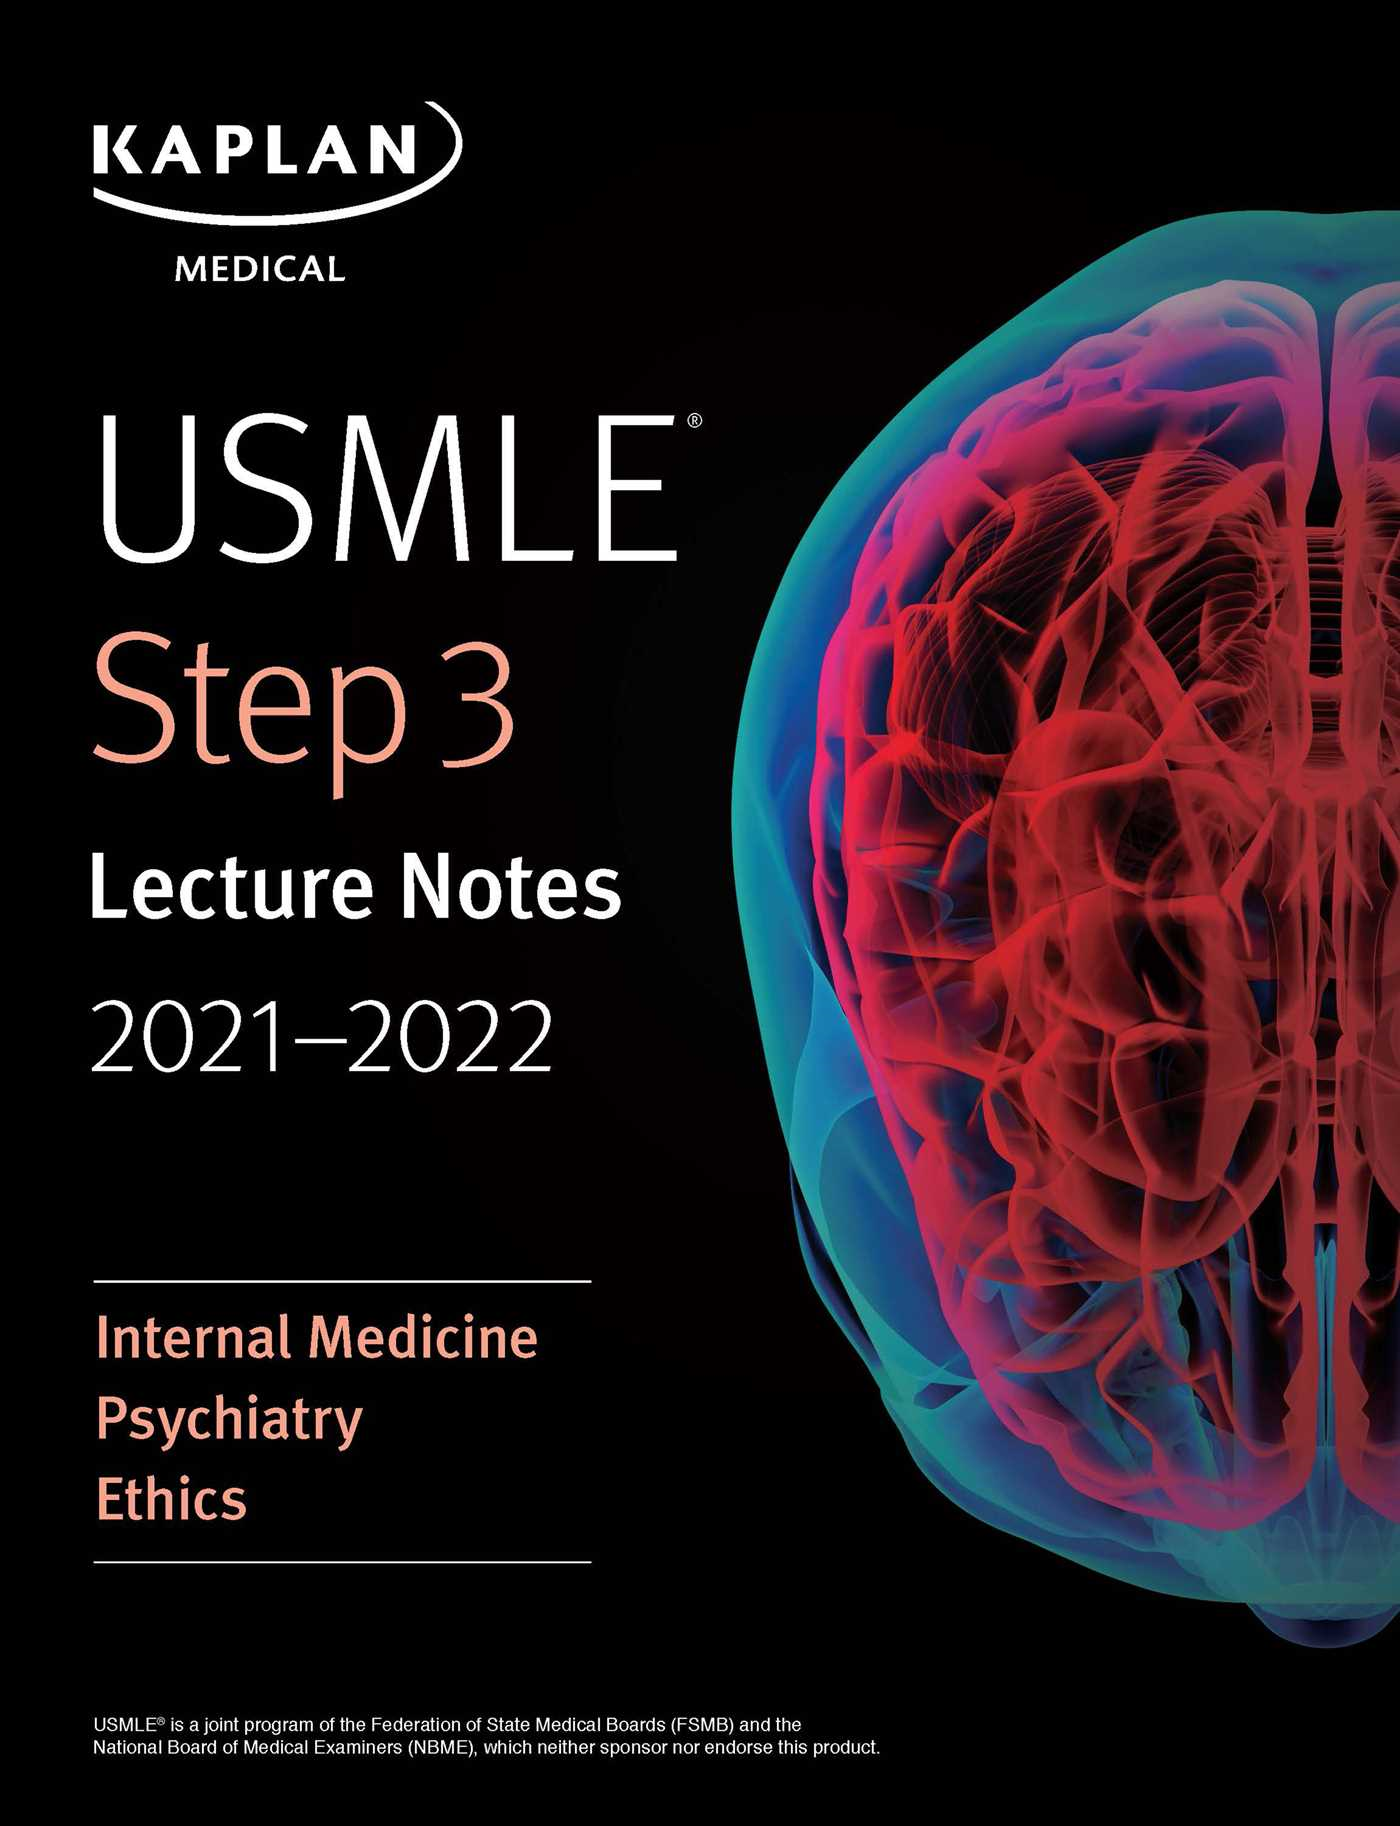 USMLE Step 3 Lecture Notes 2021-2022: Internal Medicine, Psychiatry, Ethics